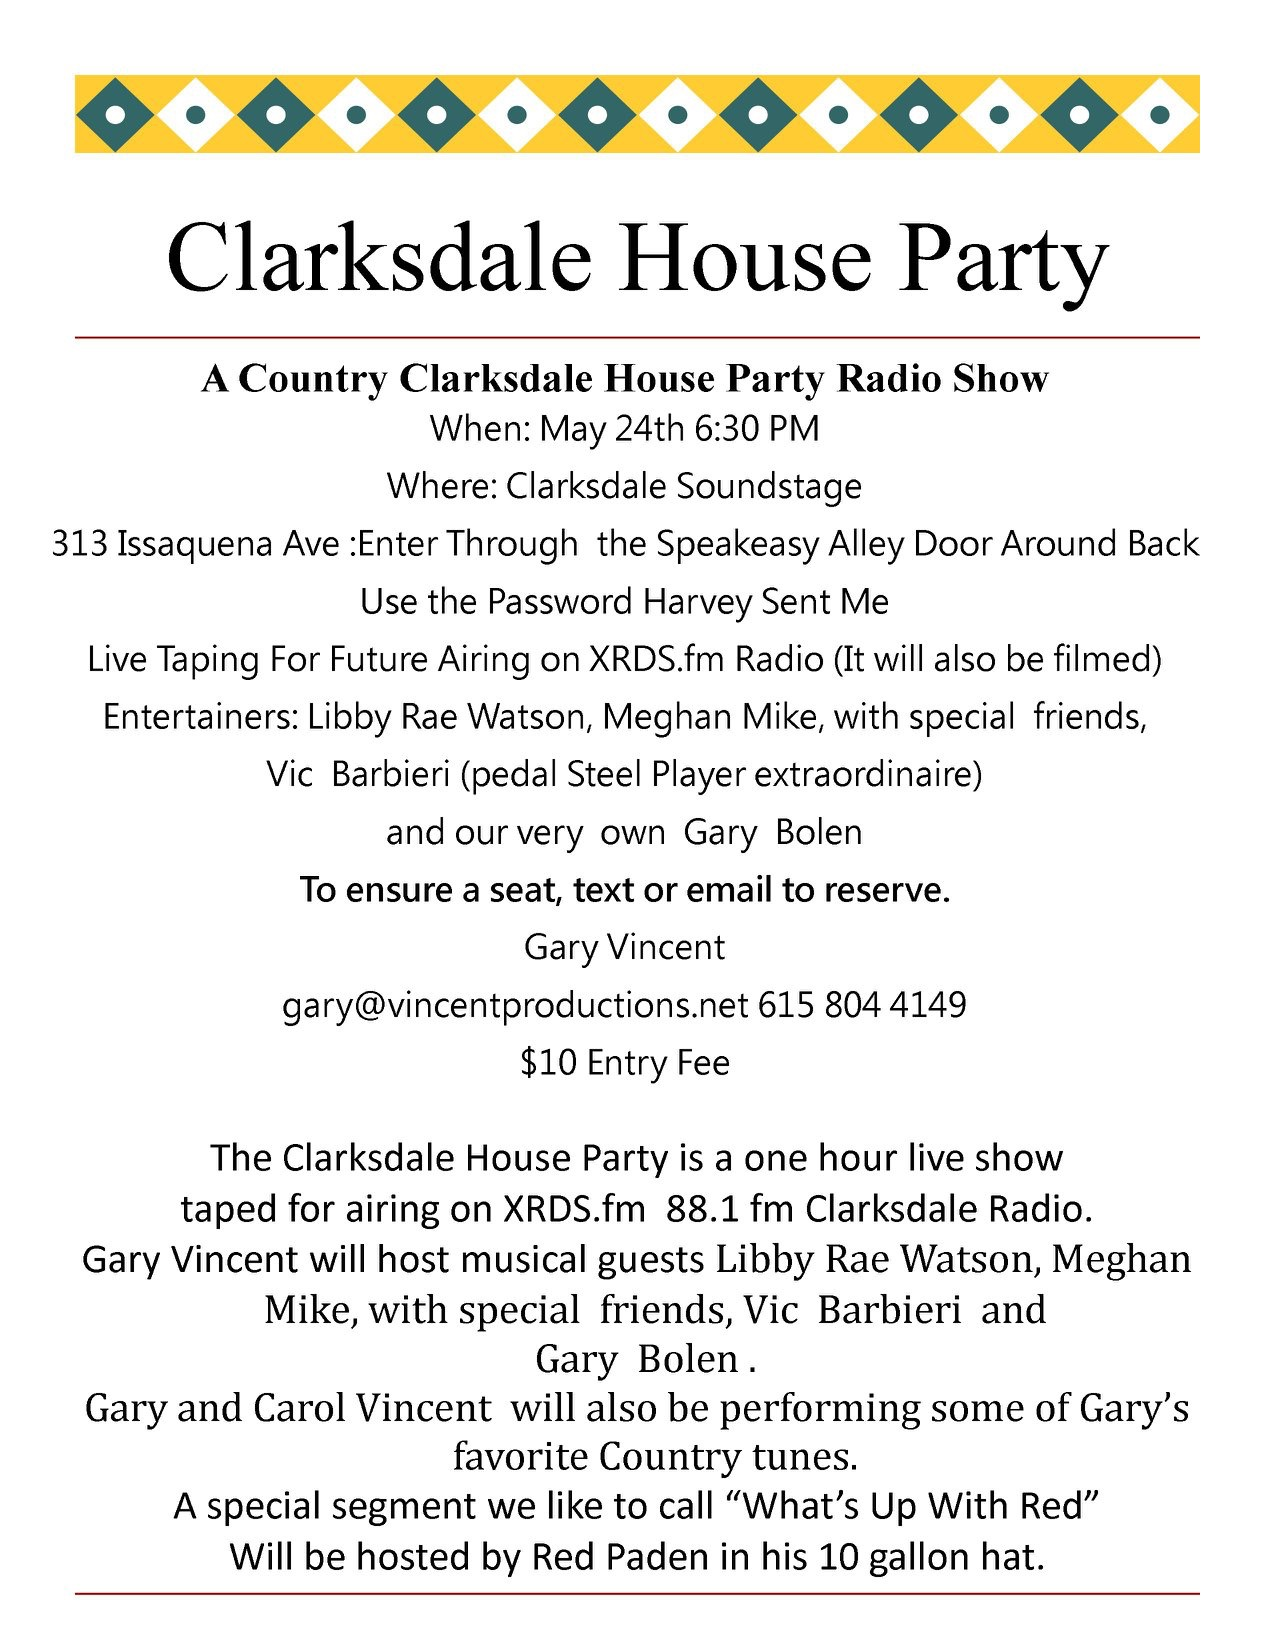 ClarksdaleHouseParty.JPG